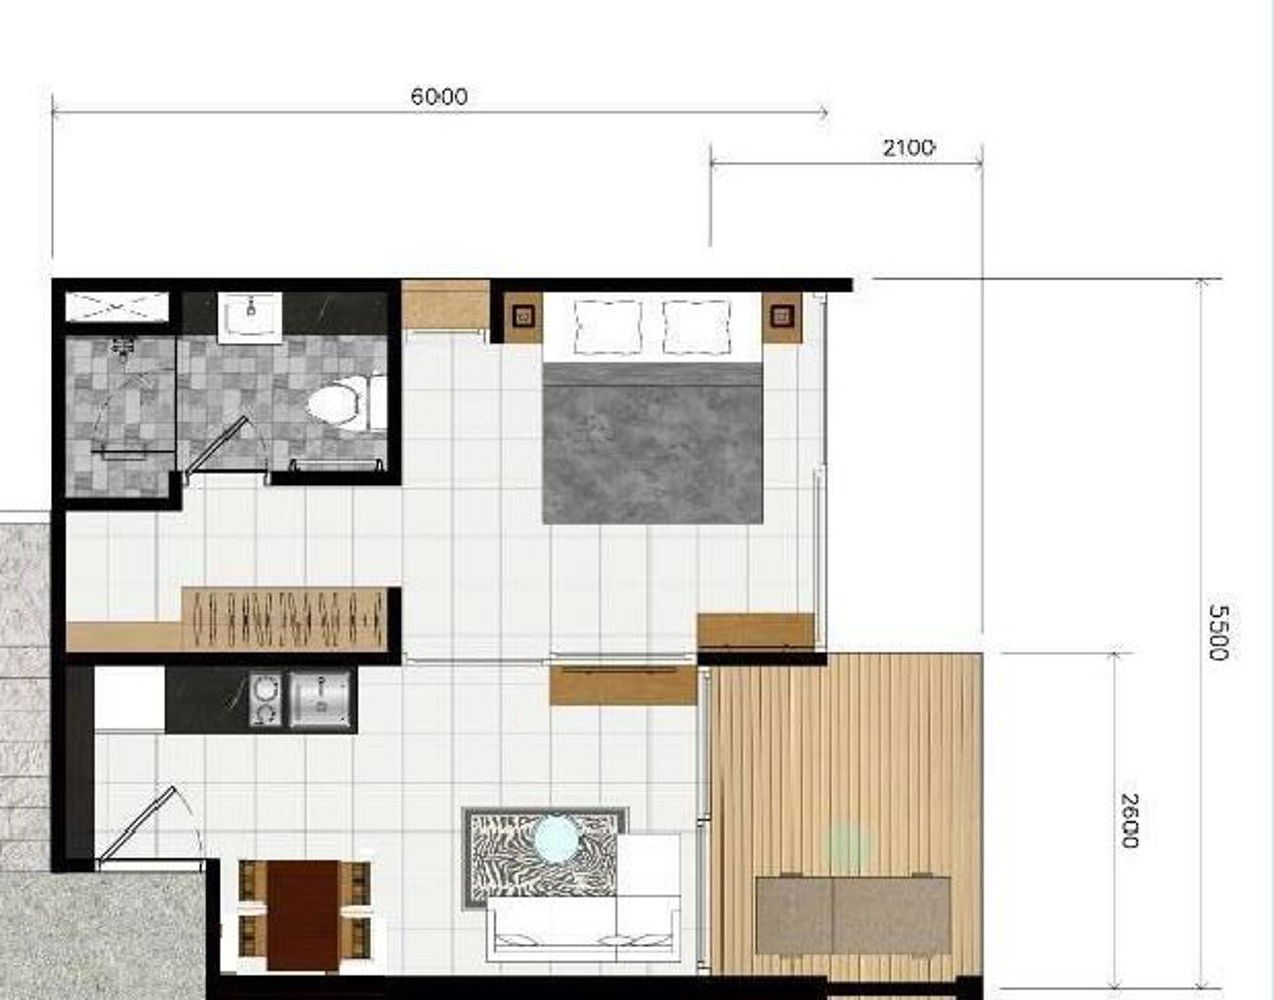 Phuket Holiday Services Naka Sea View Condominium Floor Plan